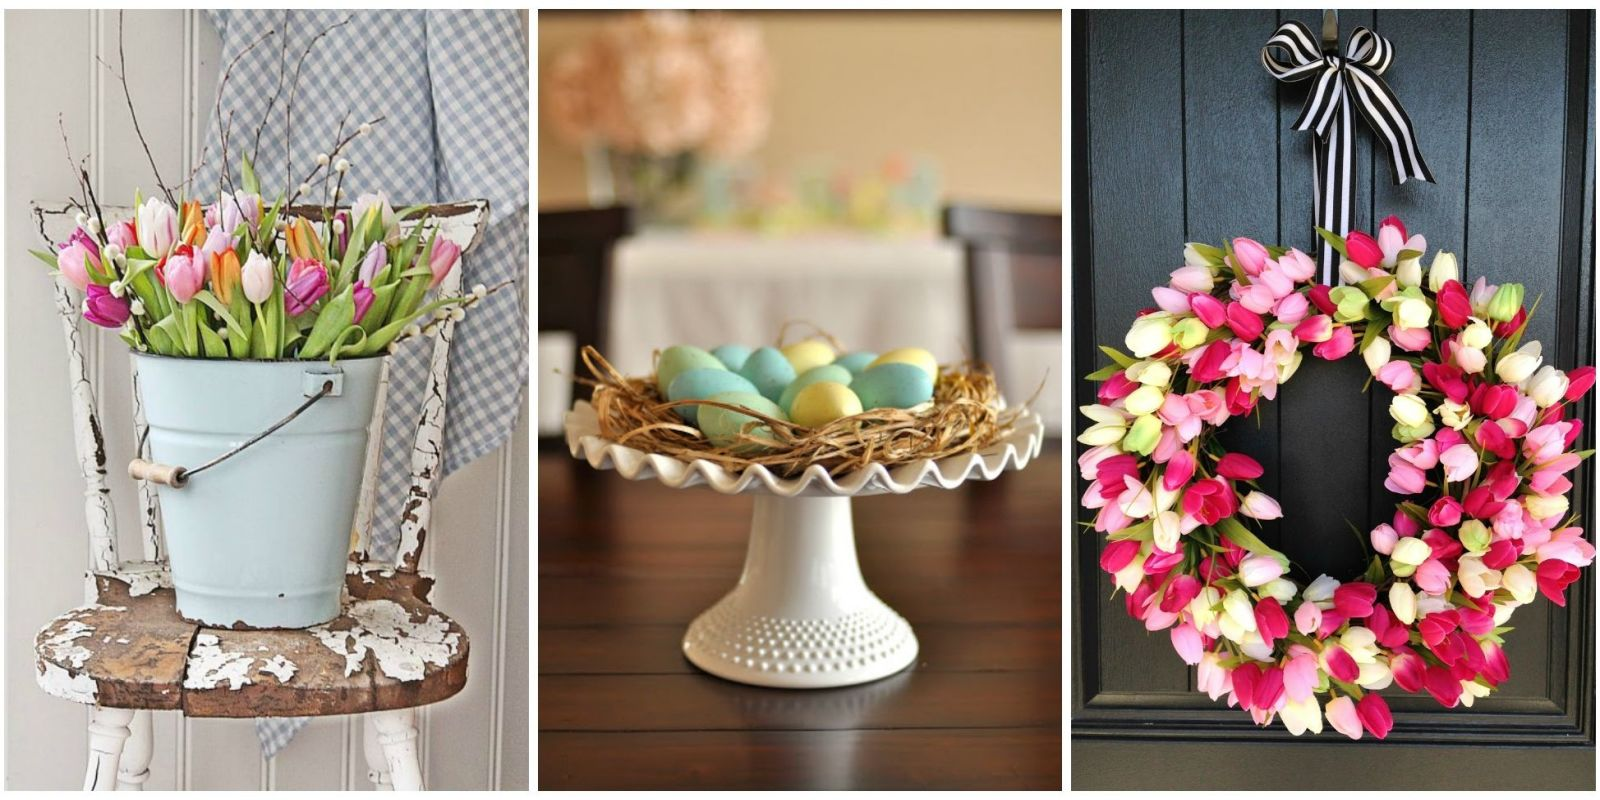 Easter decoration ideas flower arrangements